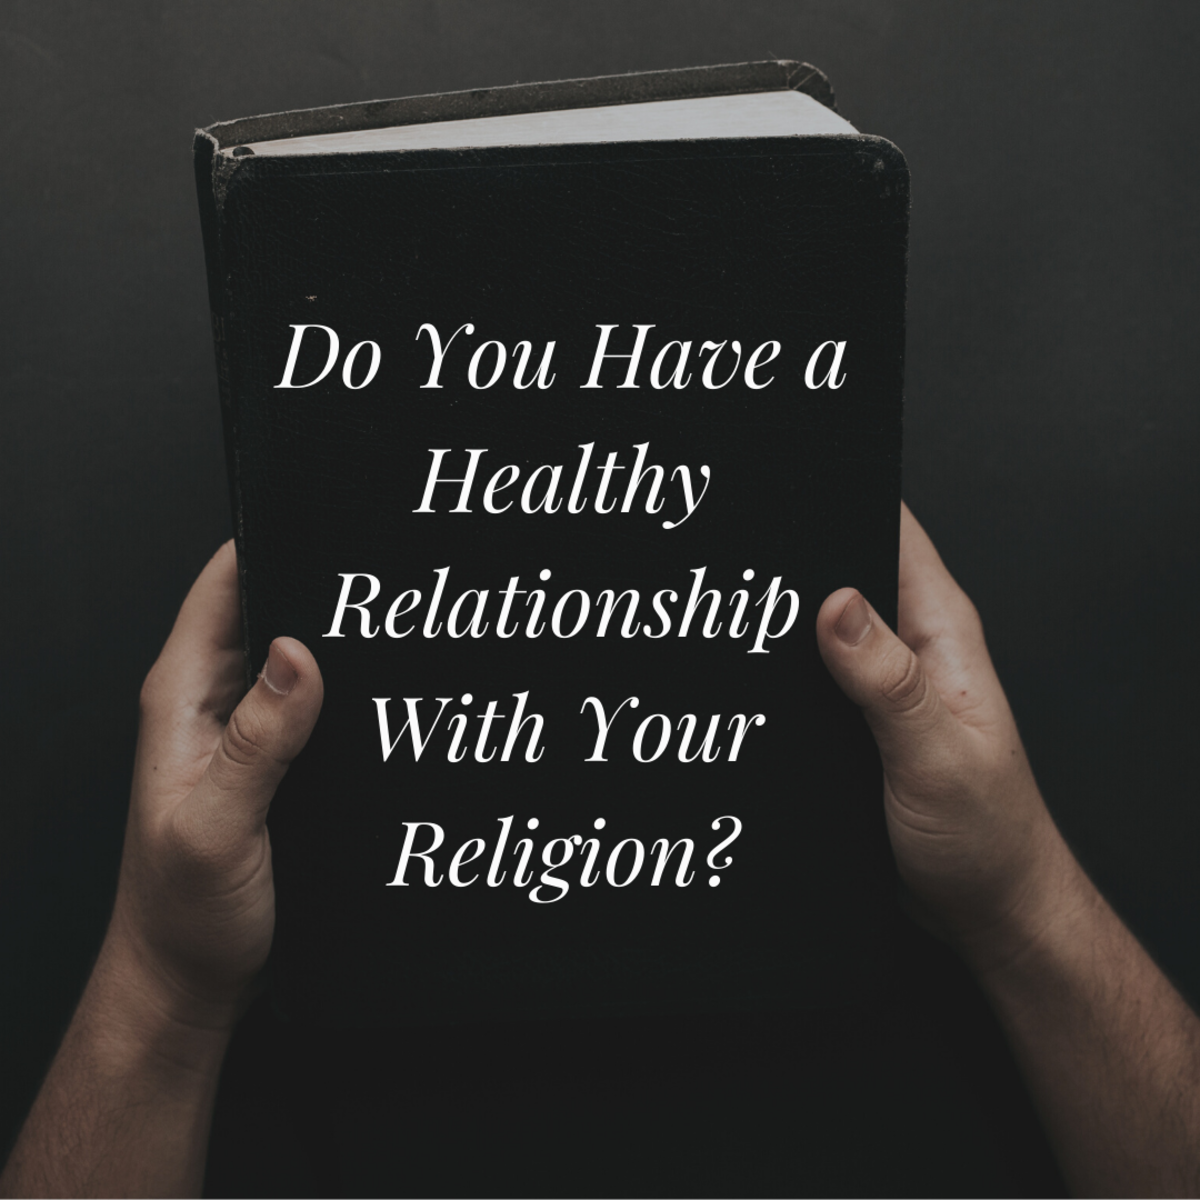 7 Signs You're in an Abusive Relationship With Your Religion